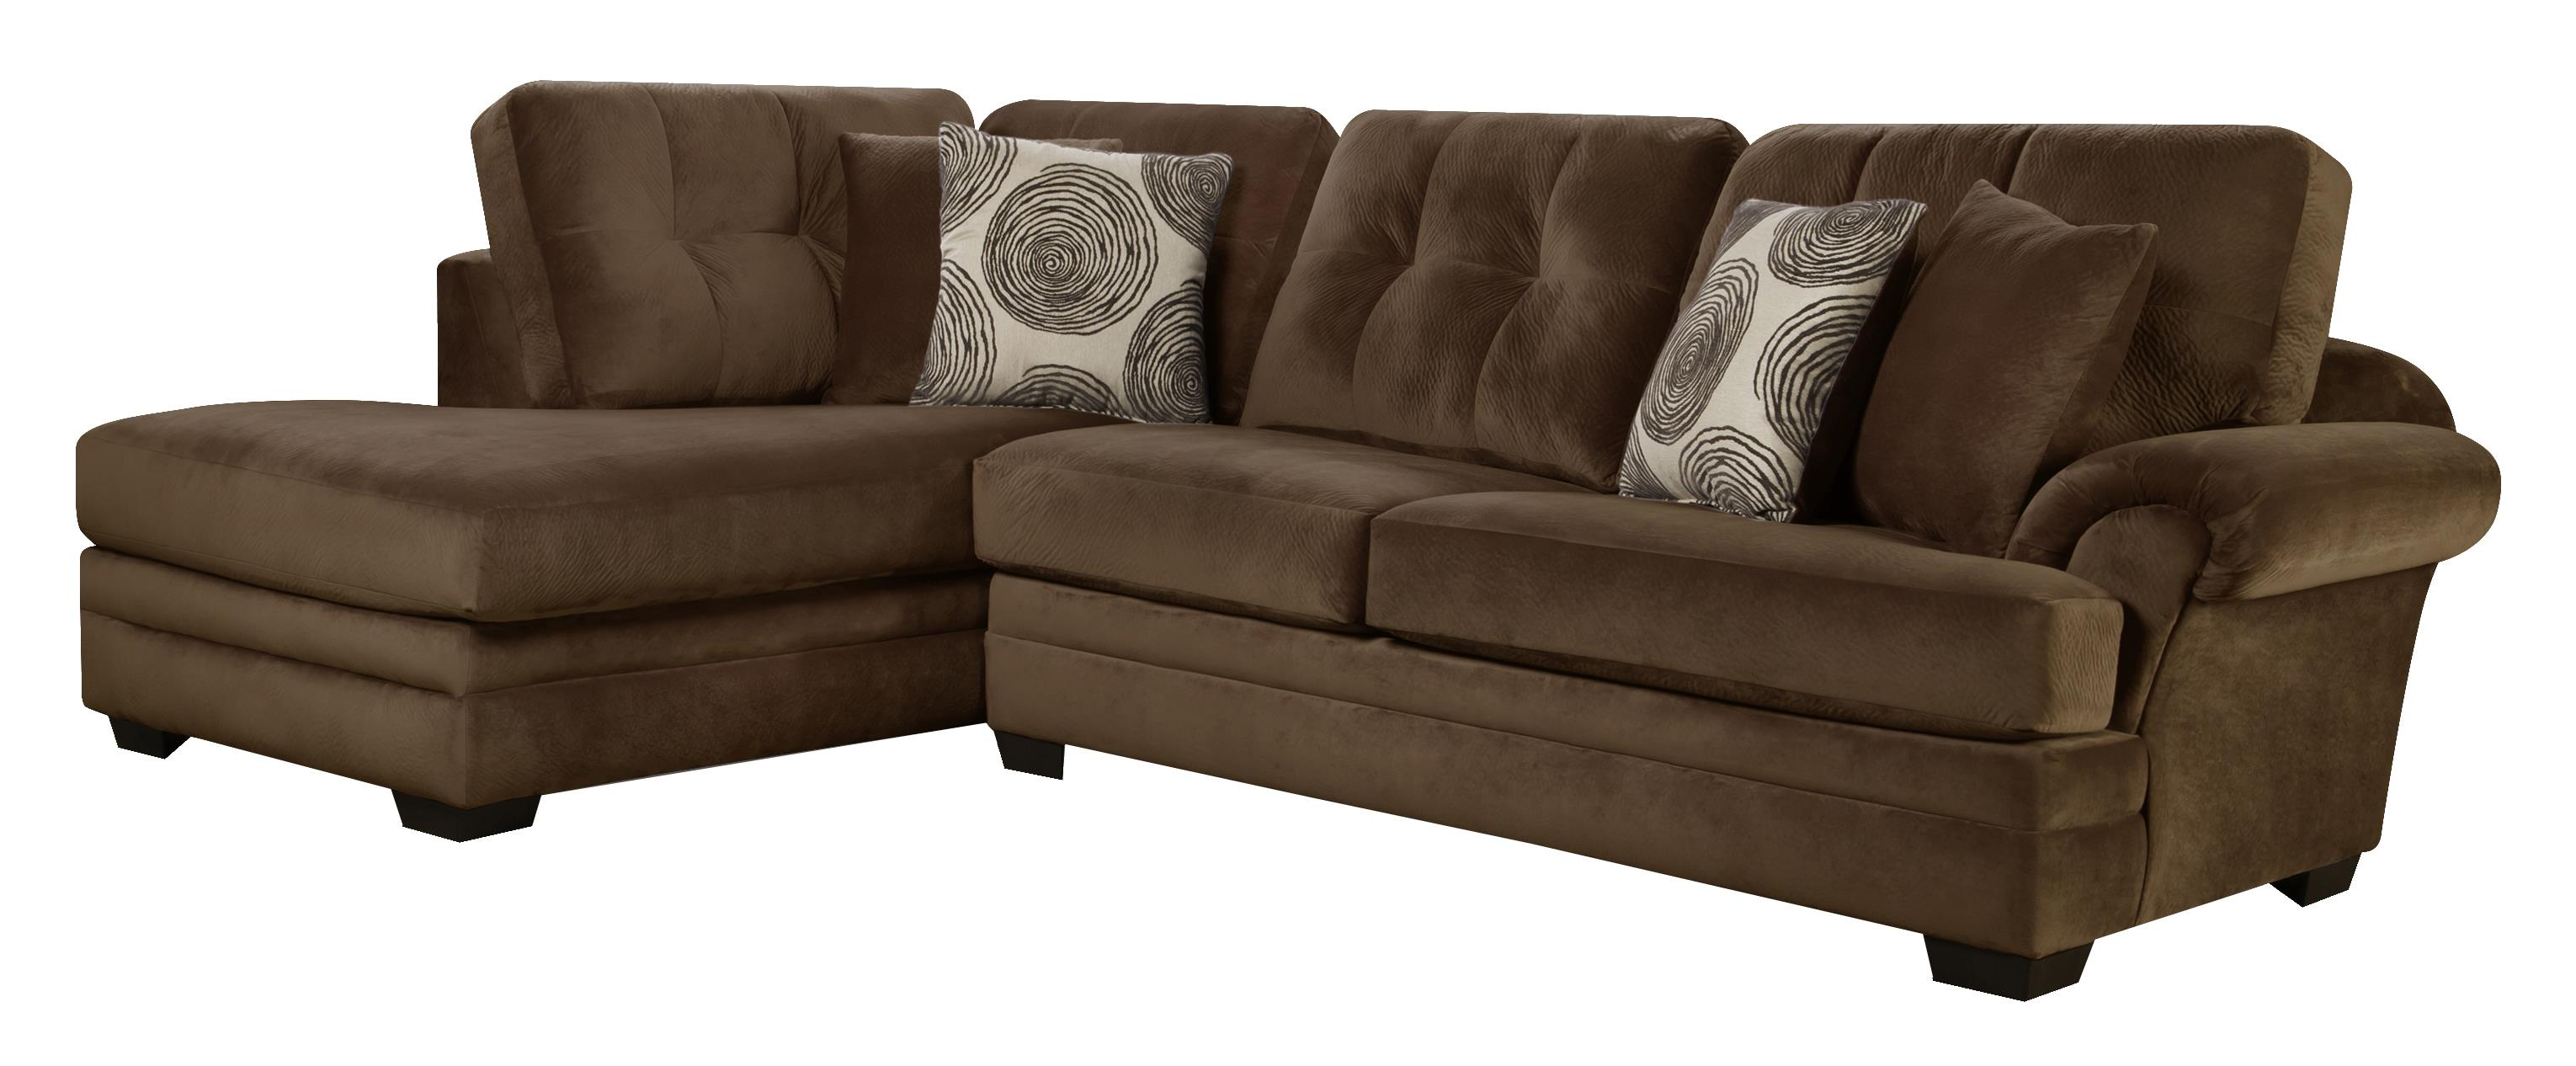 small sectional sofa with chaise lounge accent chairs to go grey leather on left side by